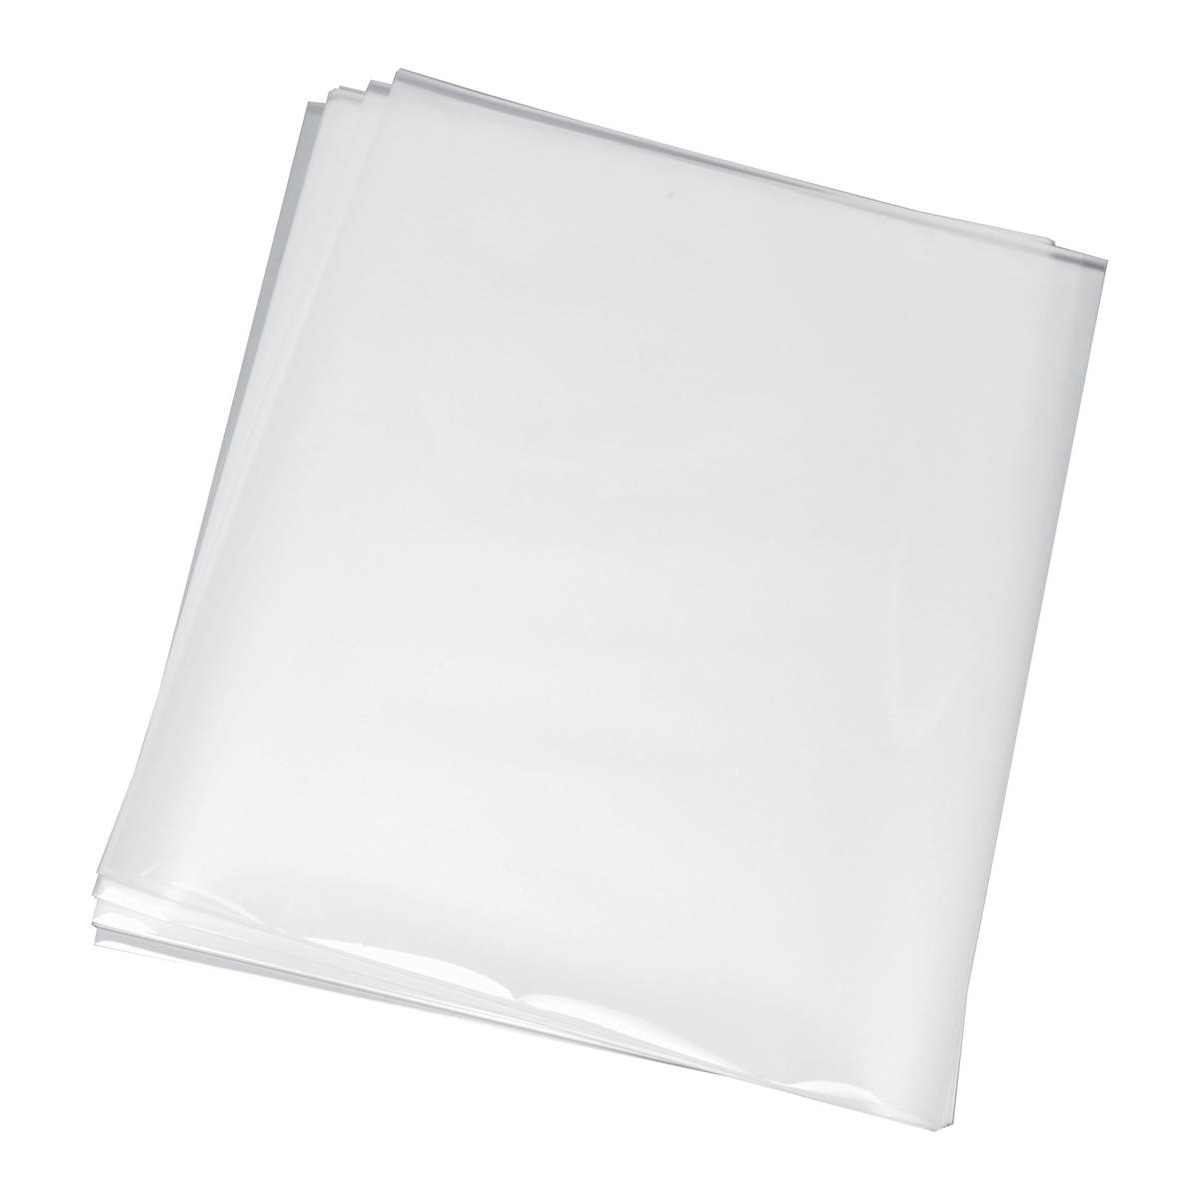 Laminator pouches GBC Laminating Pouches 250 Micron for A3 Ref 3200725 [Pack 100]